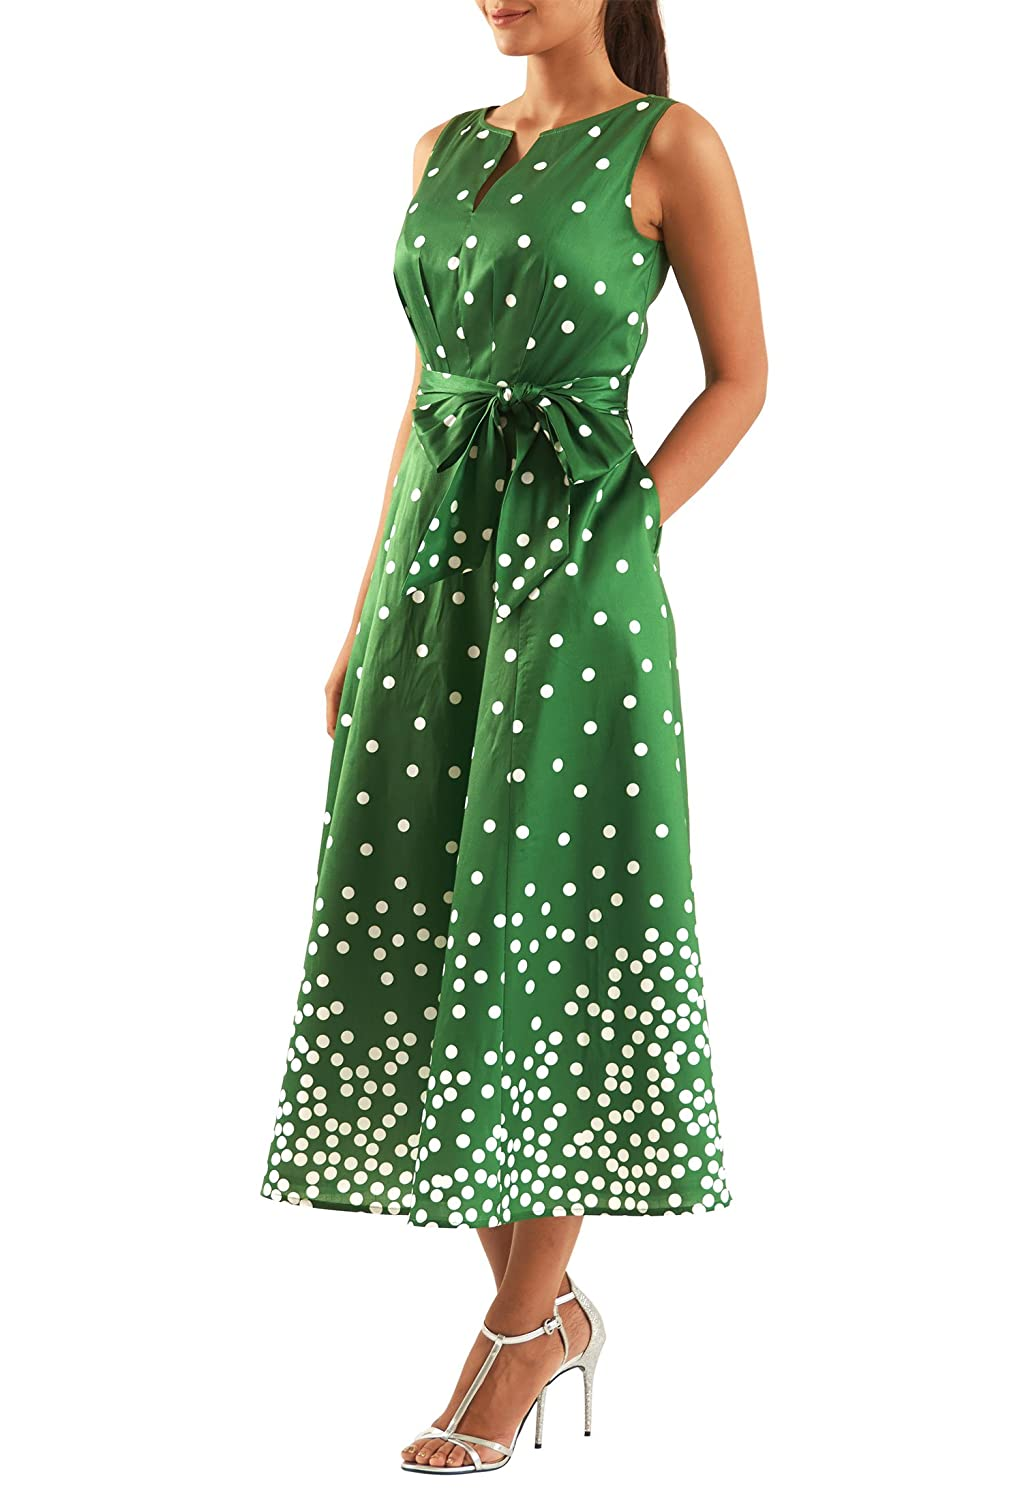 Plus Size Retro Dresses eShakti Womens Polka dot print dupioni midi dress $69.95 AT vintagedancer.com